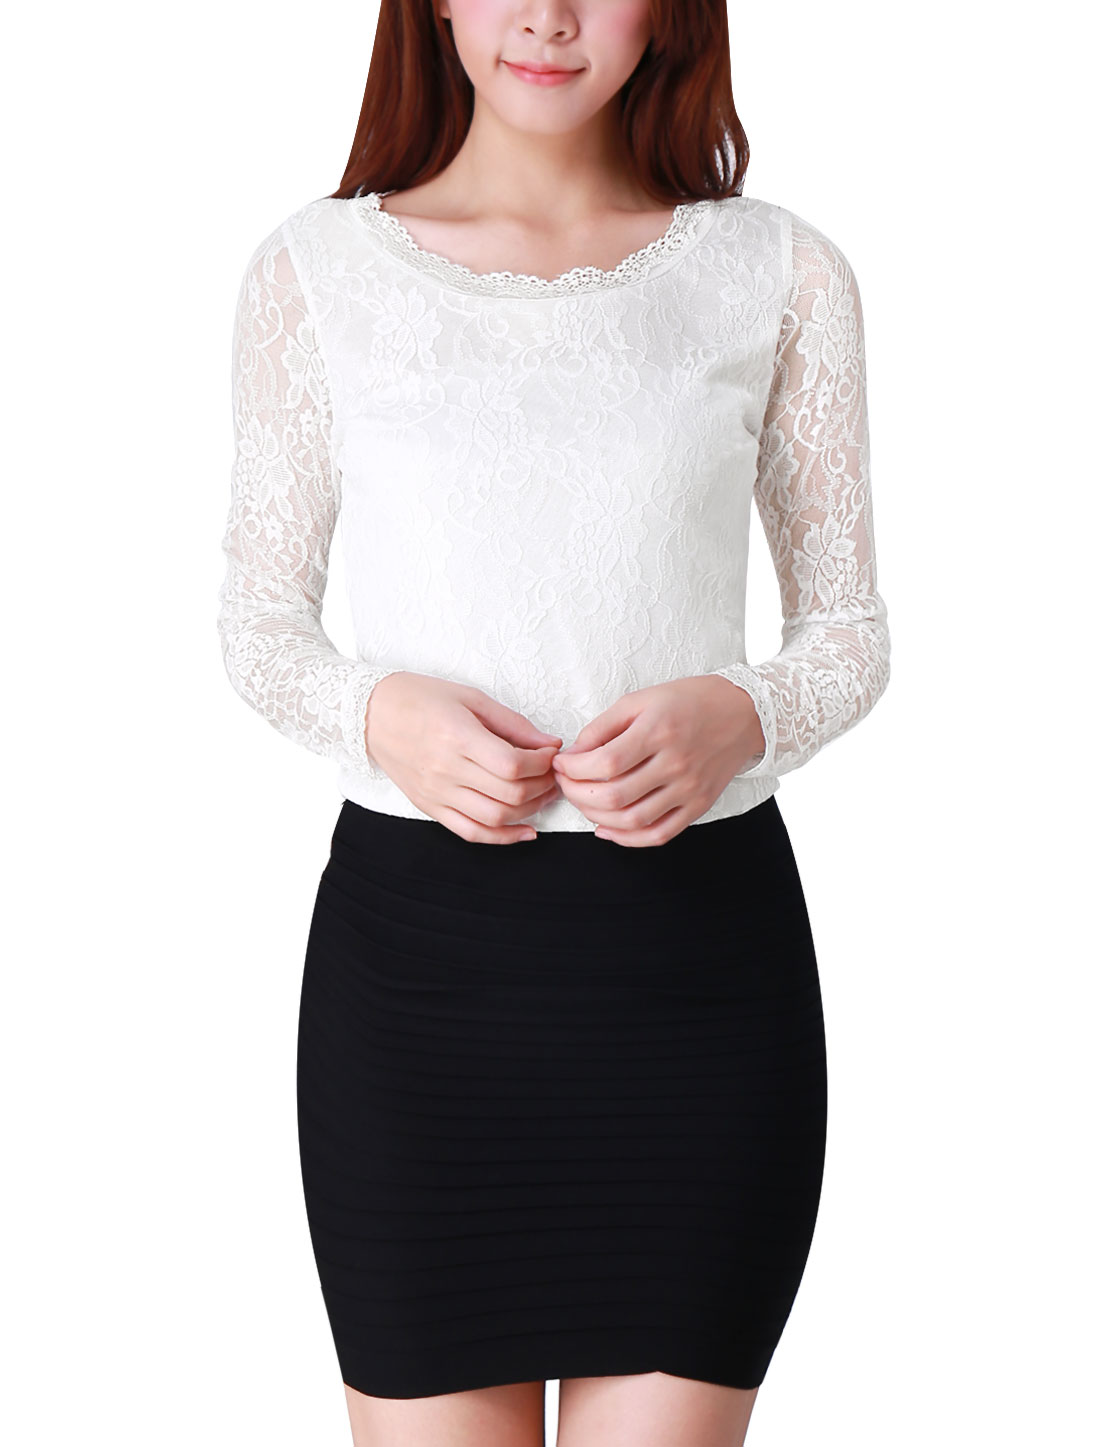 Women Slim Fit Flower Design Fully Lined See Through Lace Blouse White L